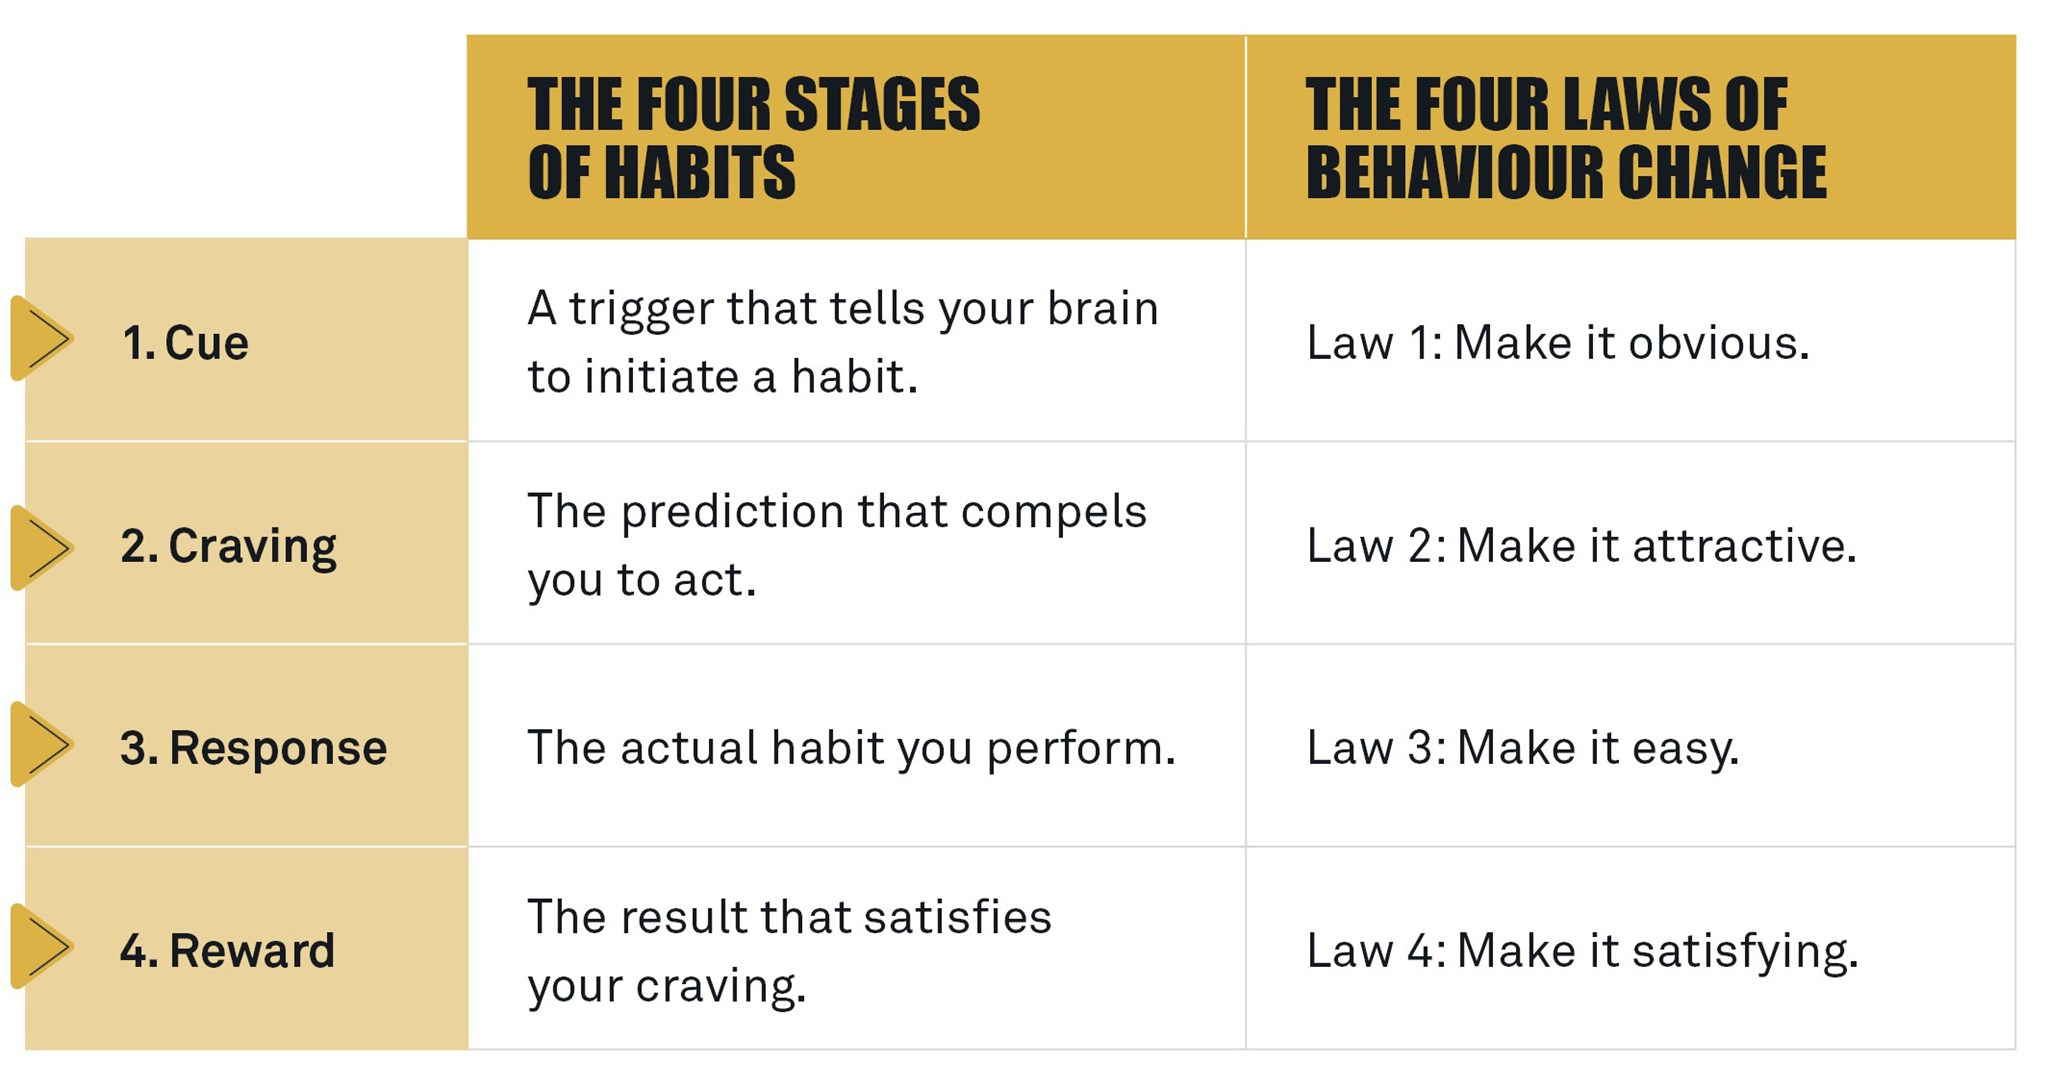 The four stages of habits and the four laws of behaviour change